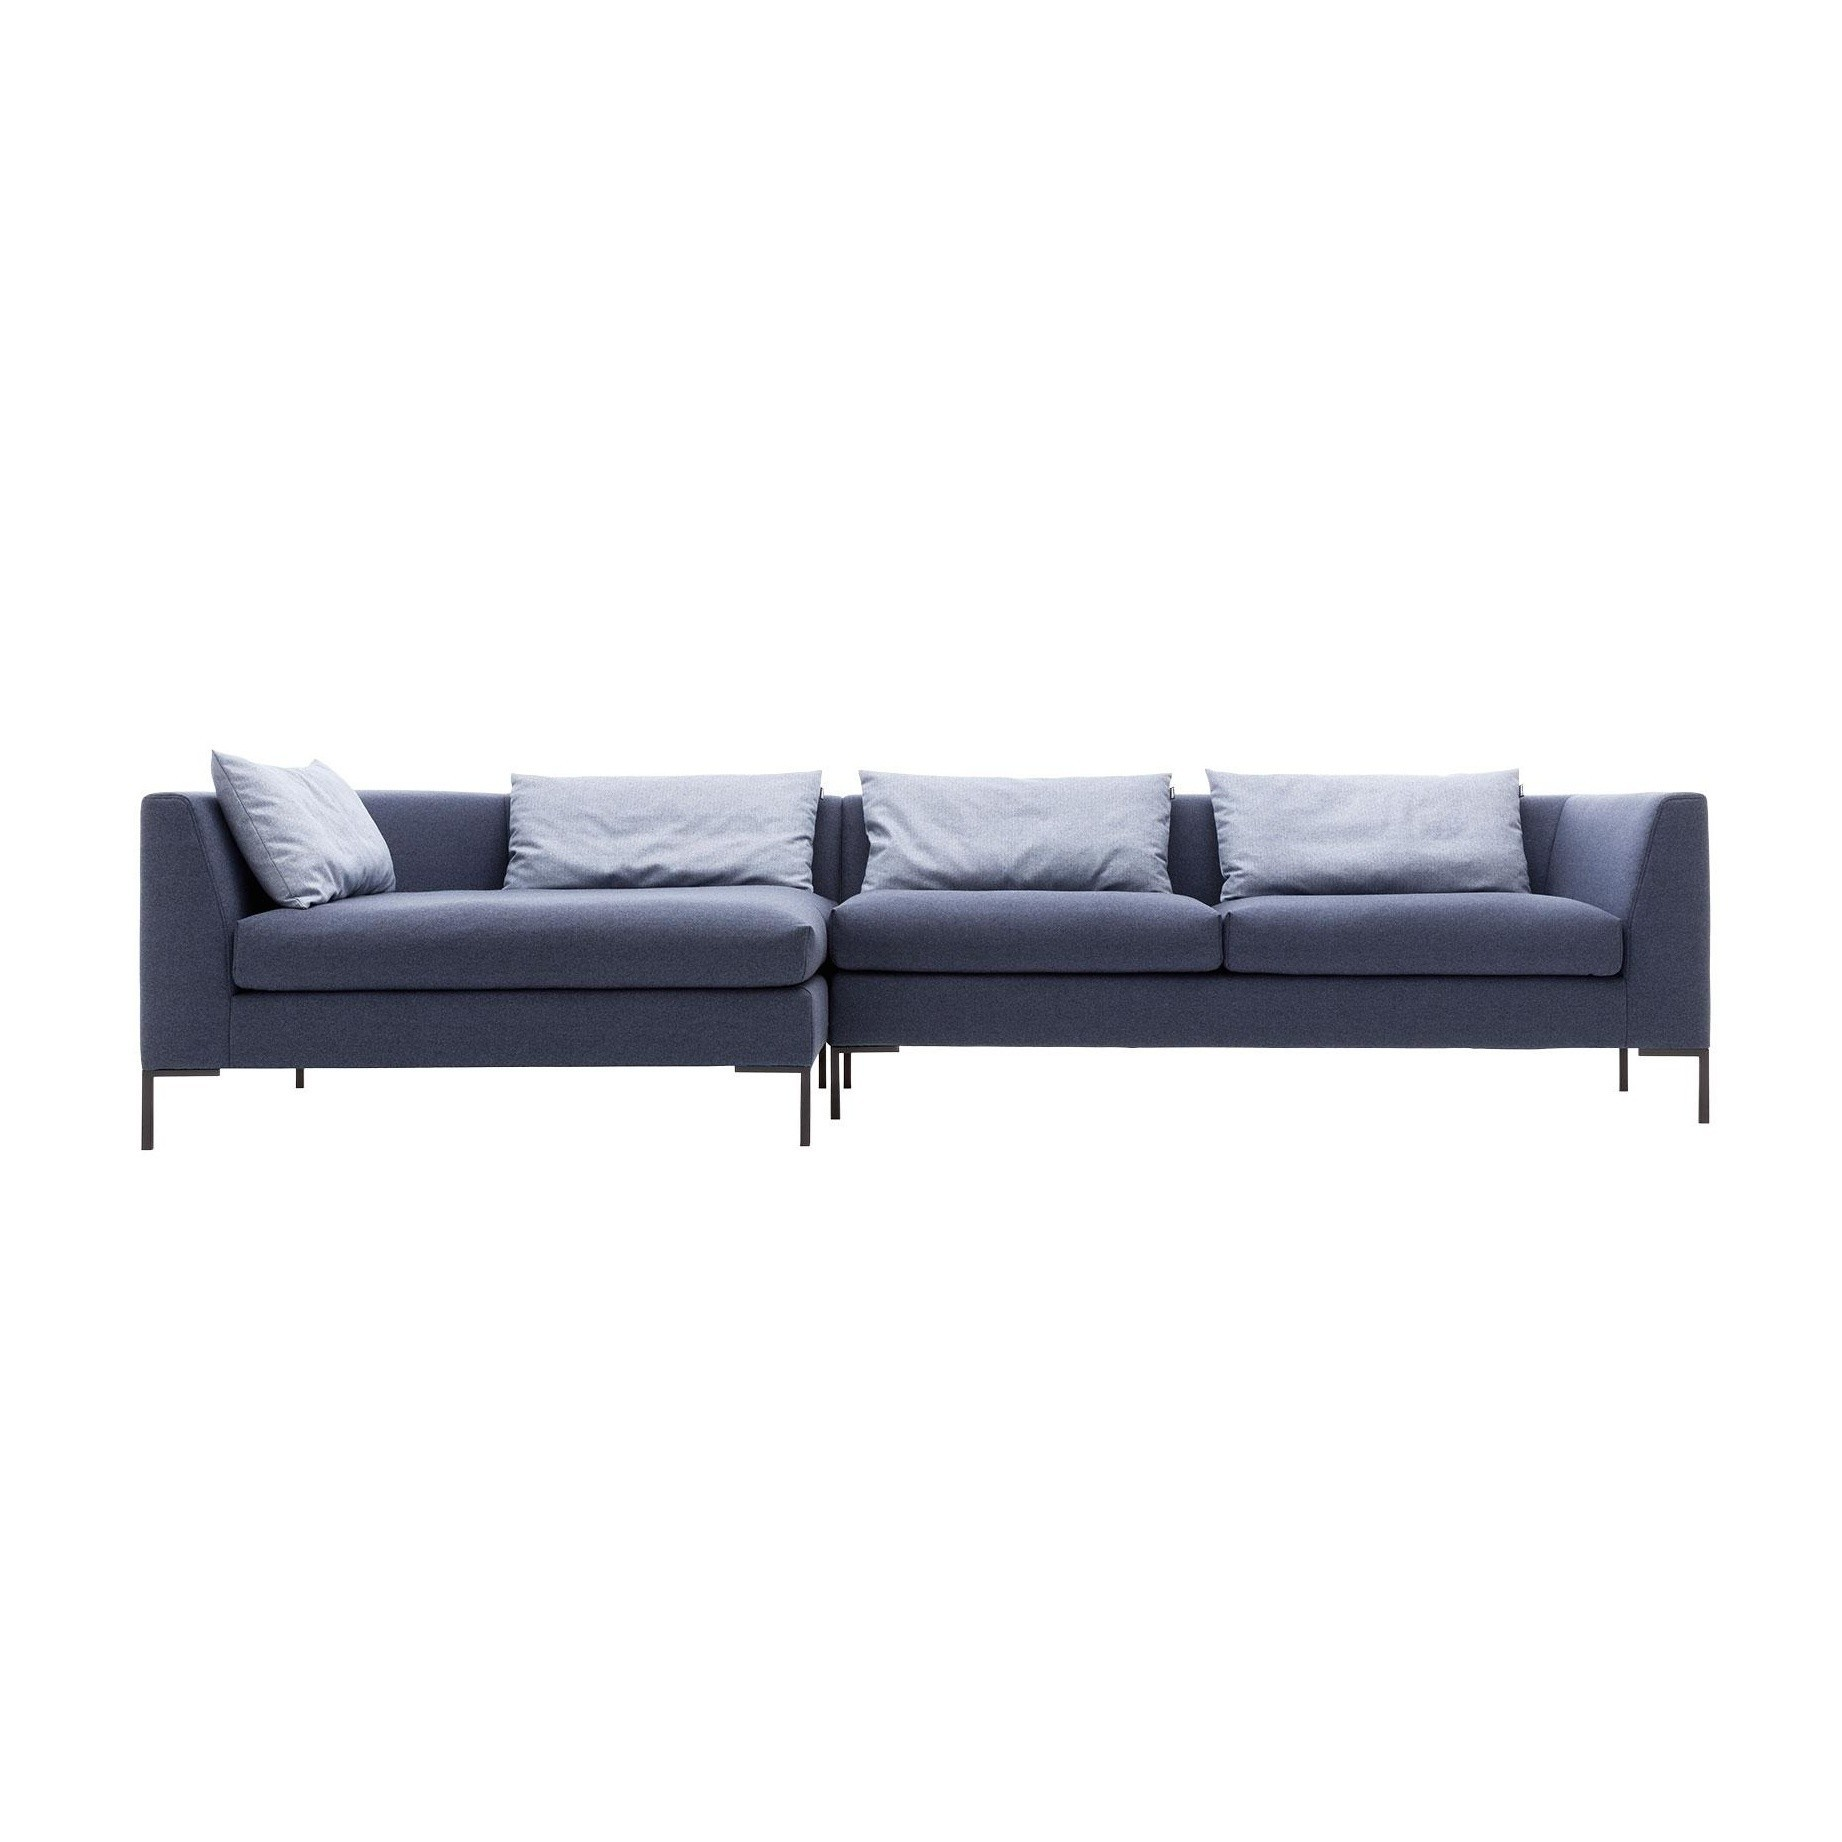 Ecksofa 140 Freistil Rolf Benz Freistil 165 Ecksofa Ambientedirect